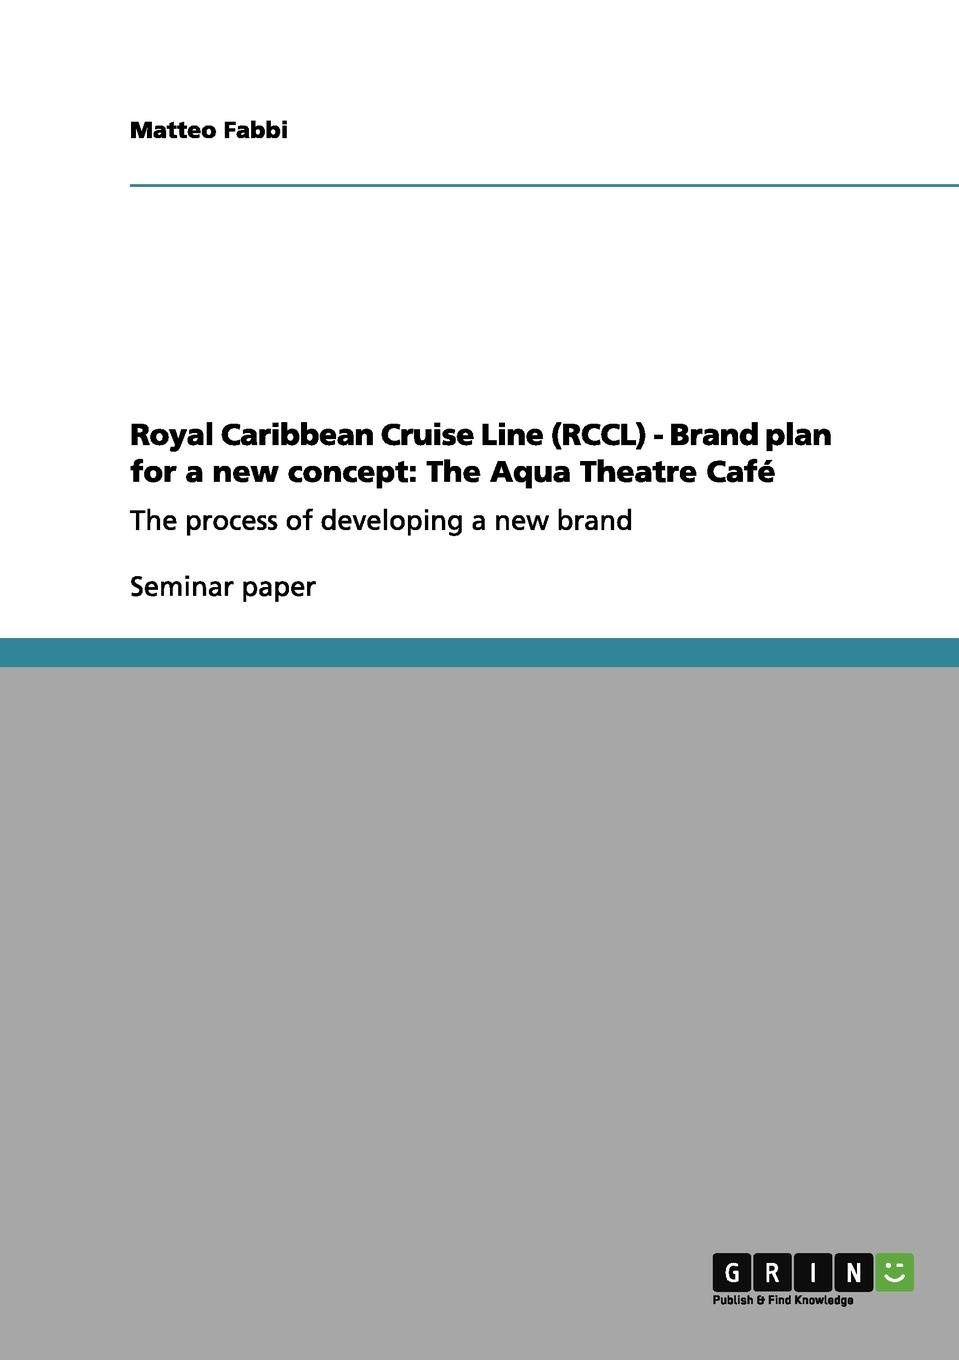 Royal Caribbean Cruise Line (RCCL) - Brand plan for a new concept. The Aqua Theatre Cafe